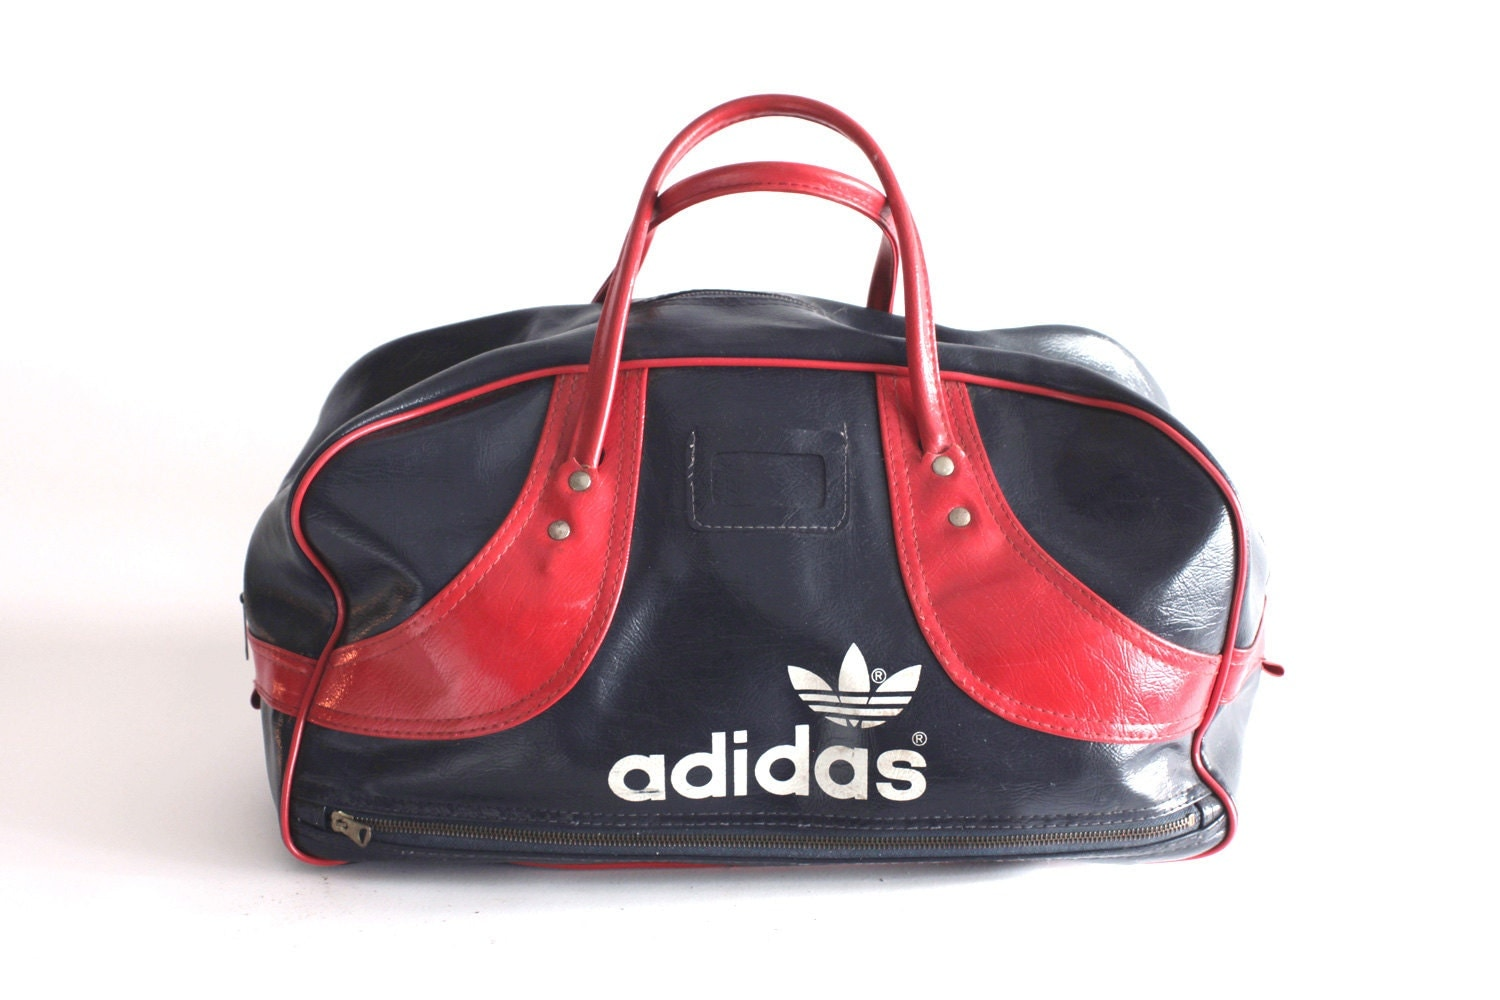 adidas gym bag blue and red duffle retro seventies. Black Bedroom Furniture Sets. Home Design Ideas